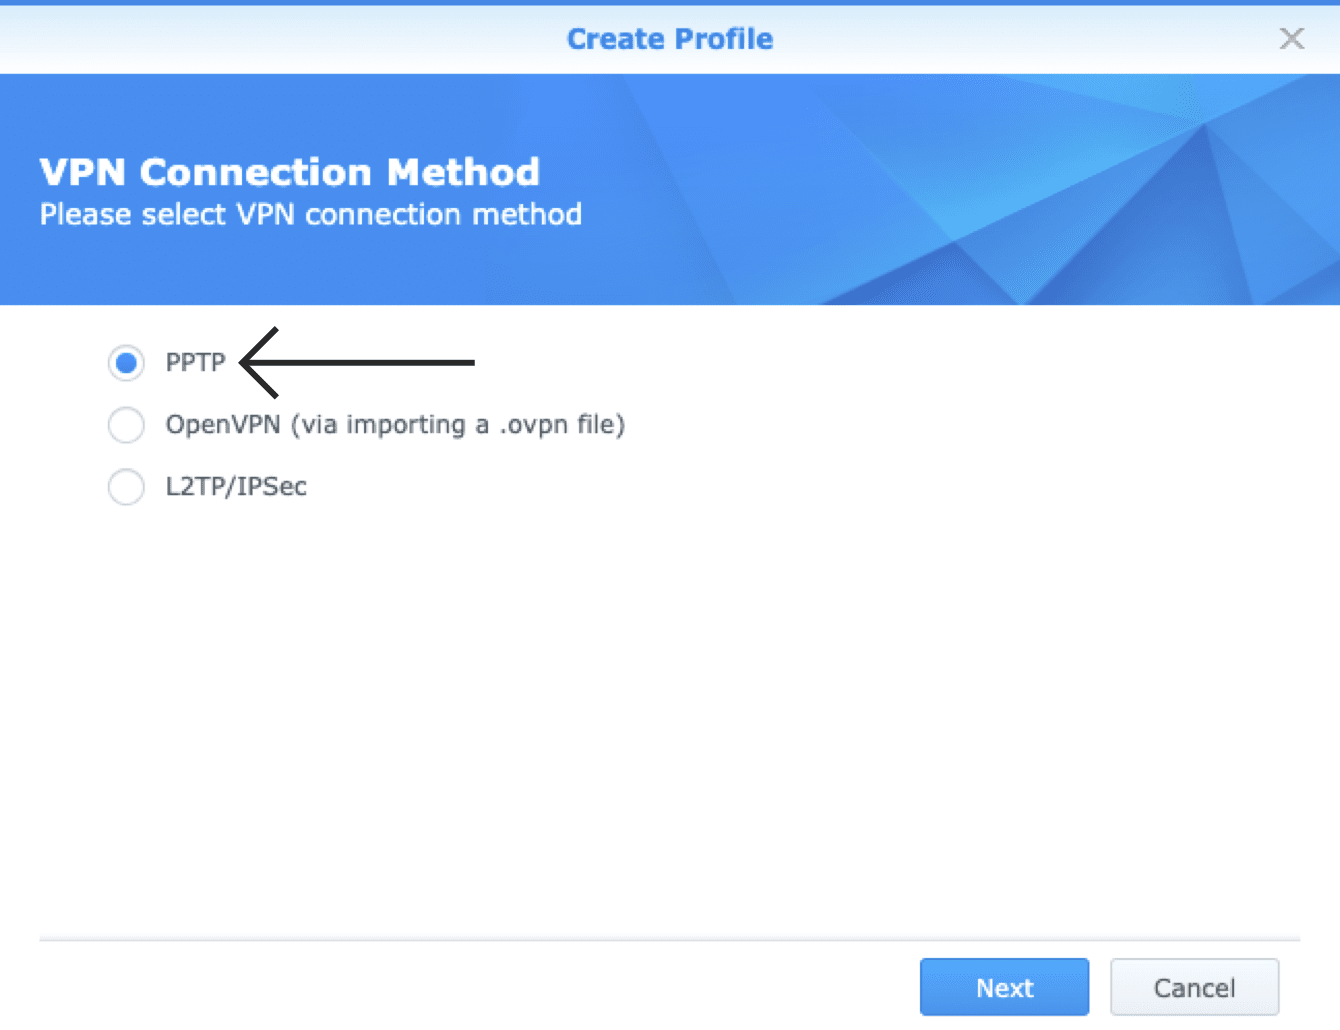 synology-ds115j-vpn-connection-method-select-pptp